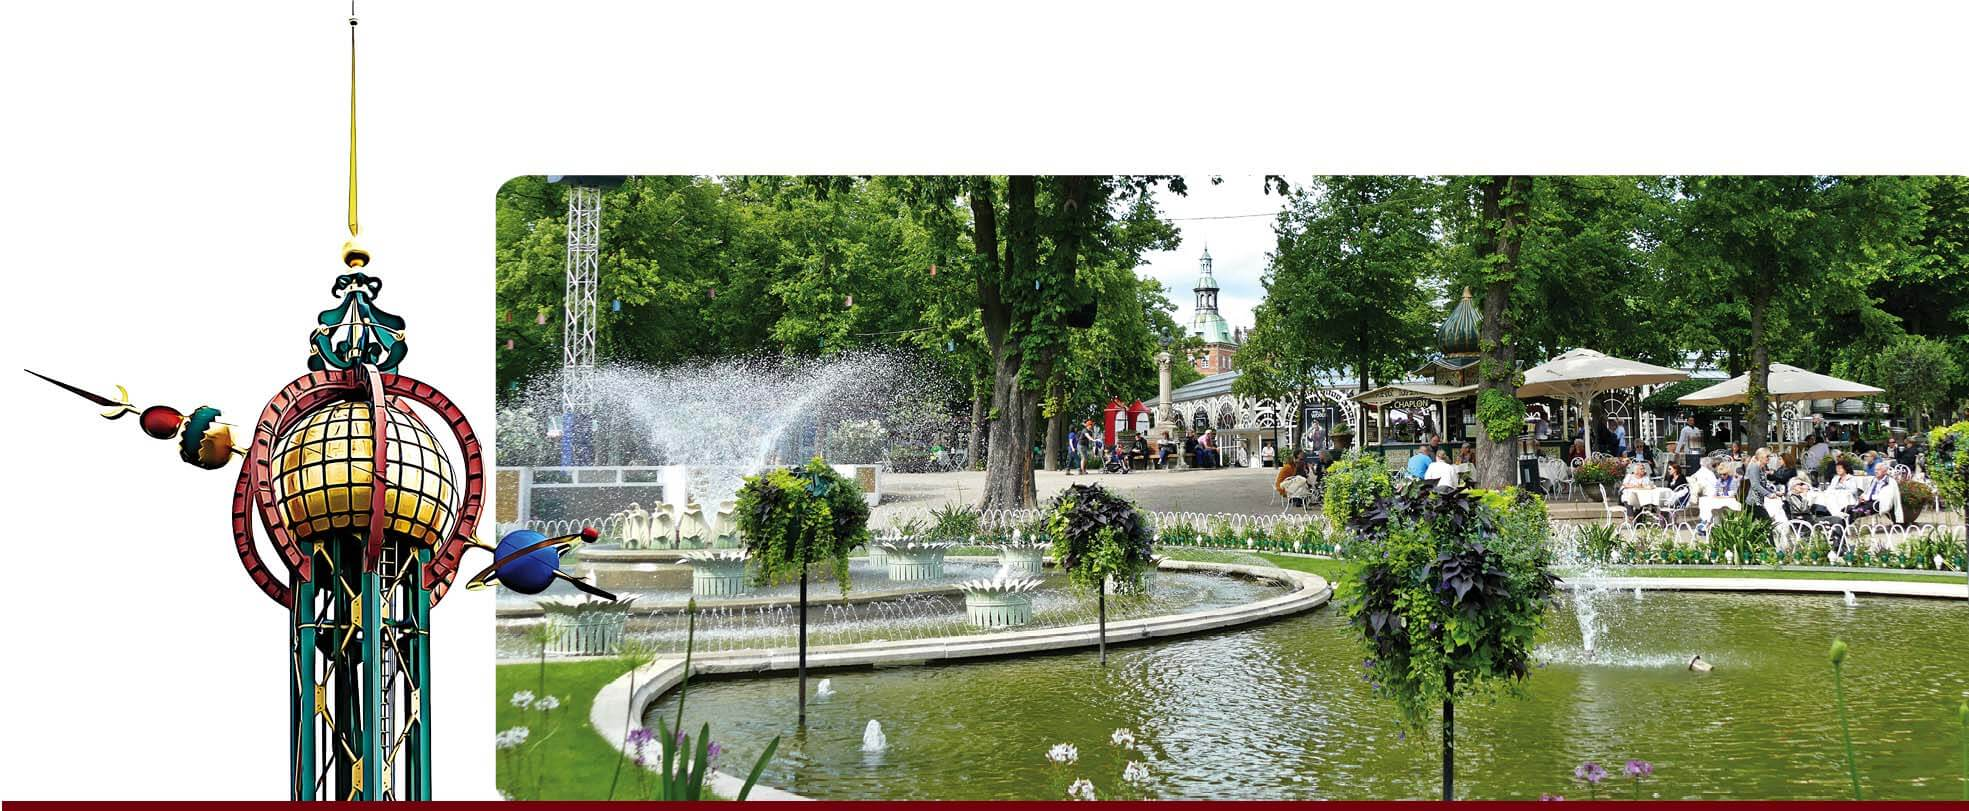 copenhague, danemark, Denmark, voyage, europe, tivoli, garden, attraction, fleurs, jardin